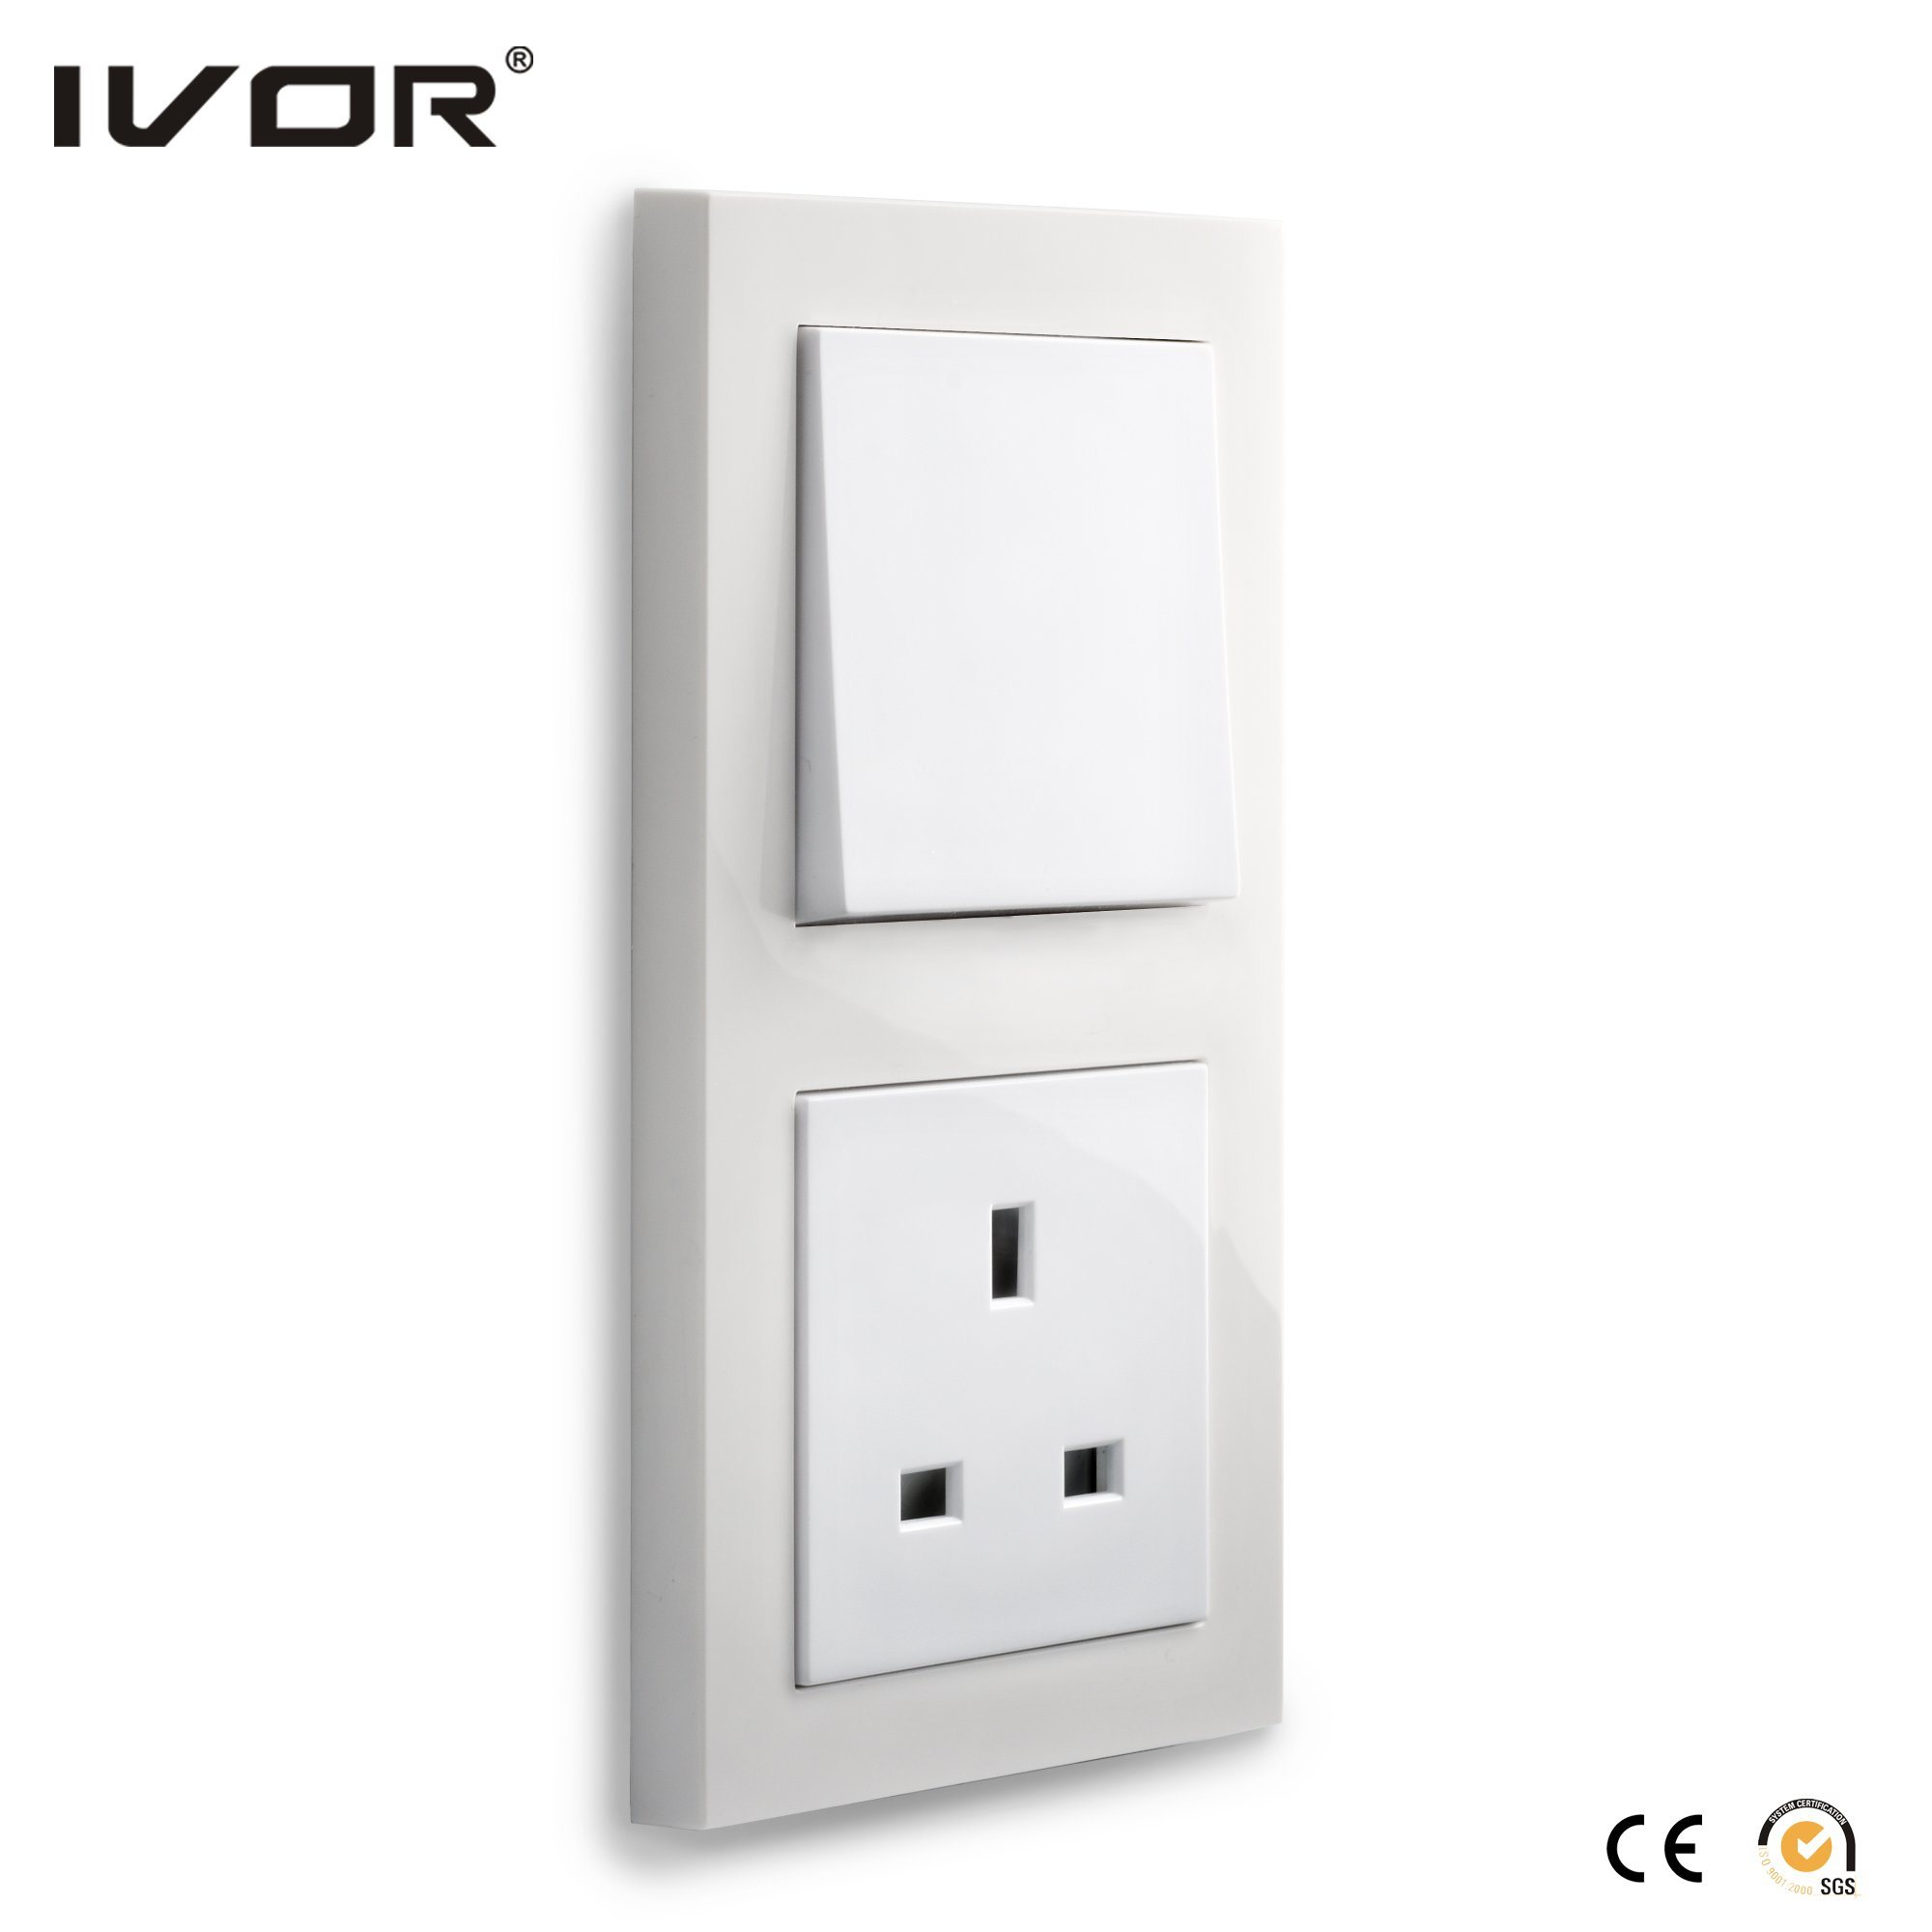 Mechanical Switch and Socket in Connect Version Plastic Outline Frame